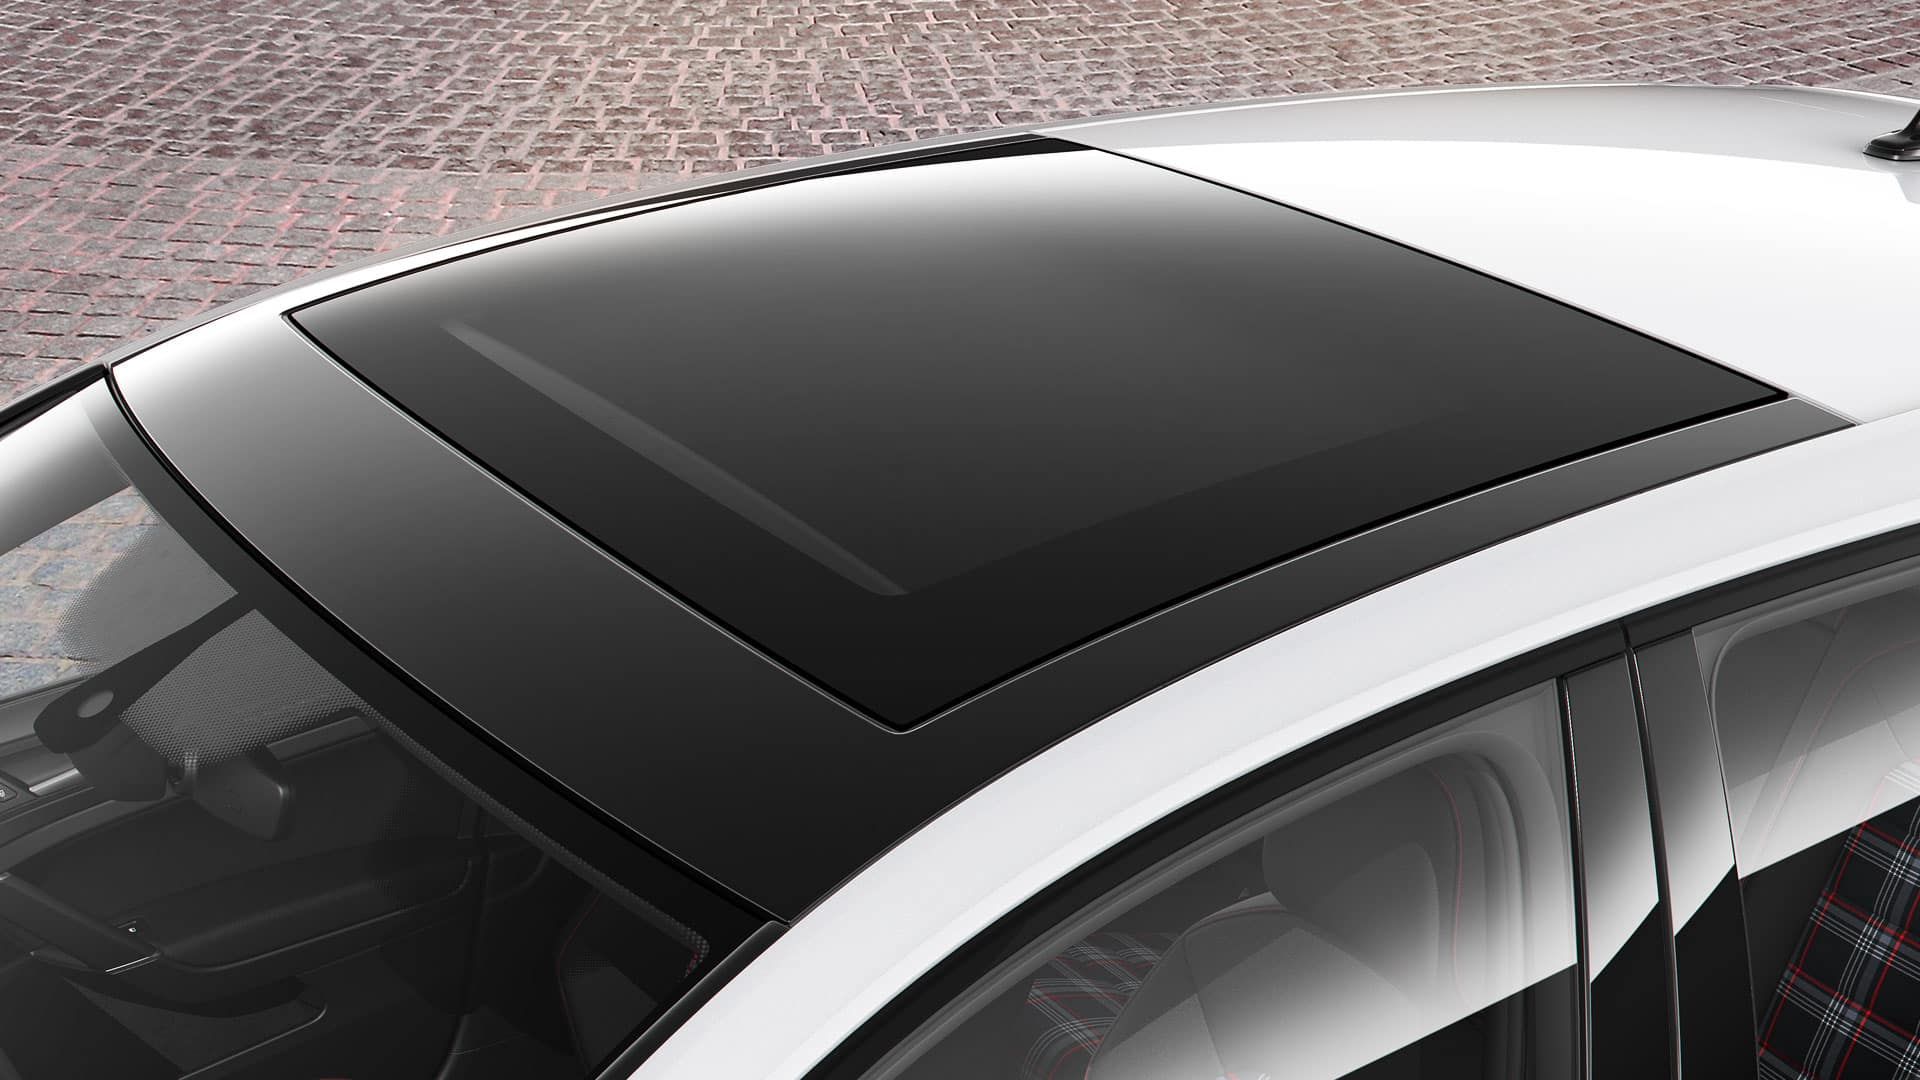 2019 VW Golf GTI sunroof